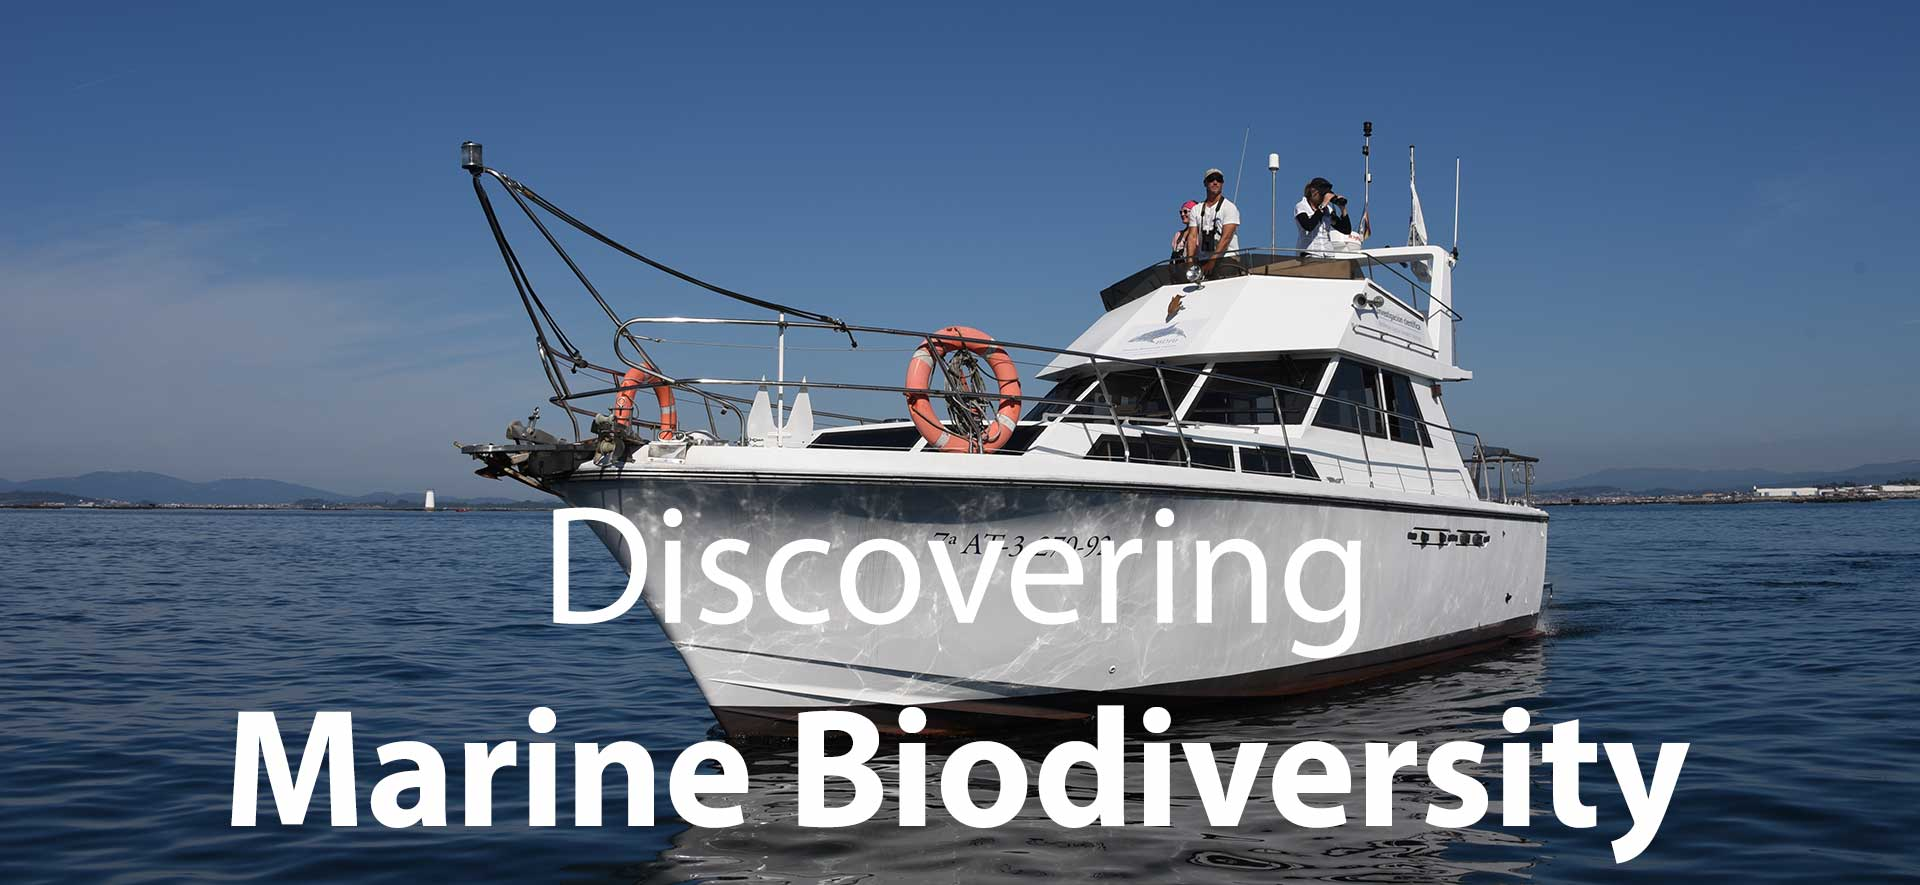 Marine biodiversity research